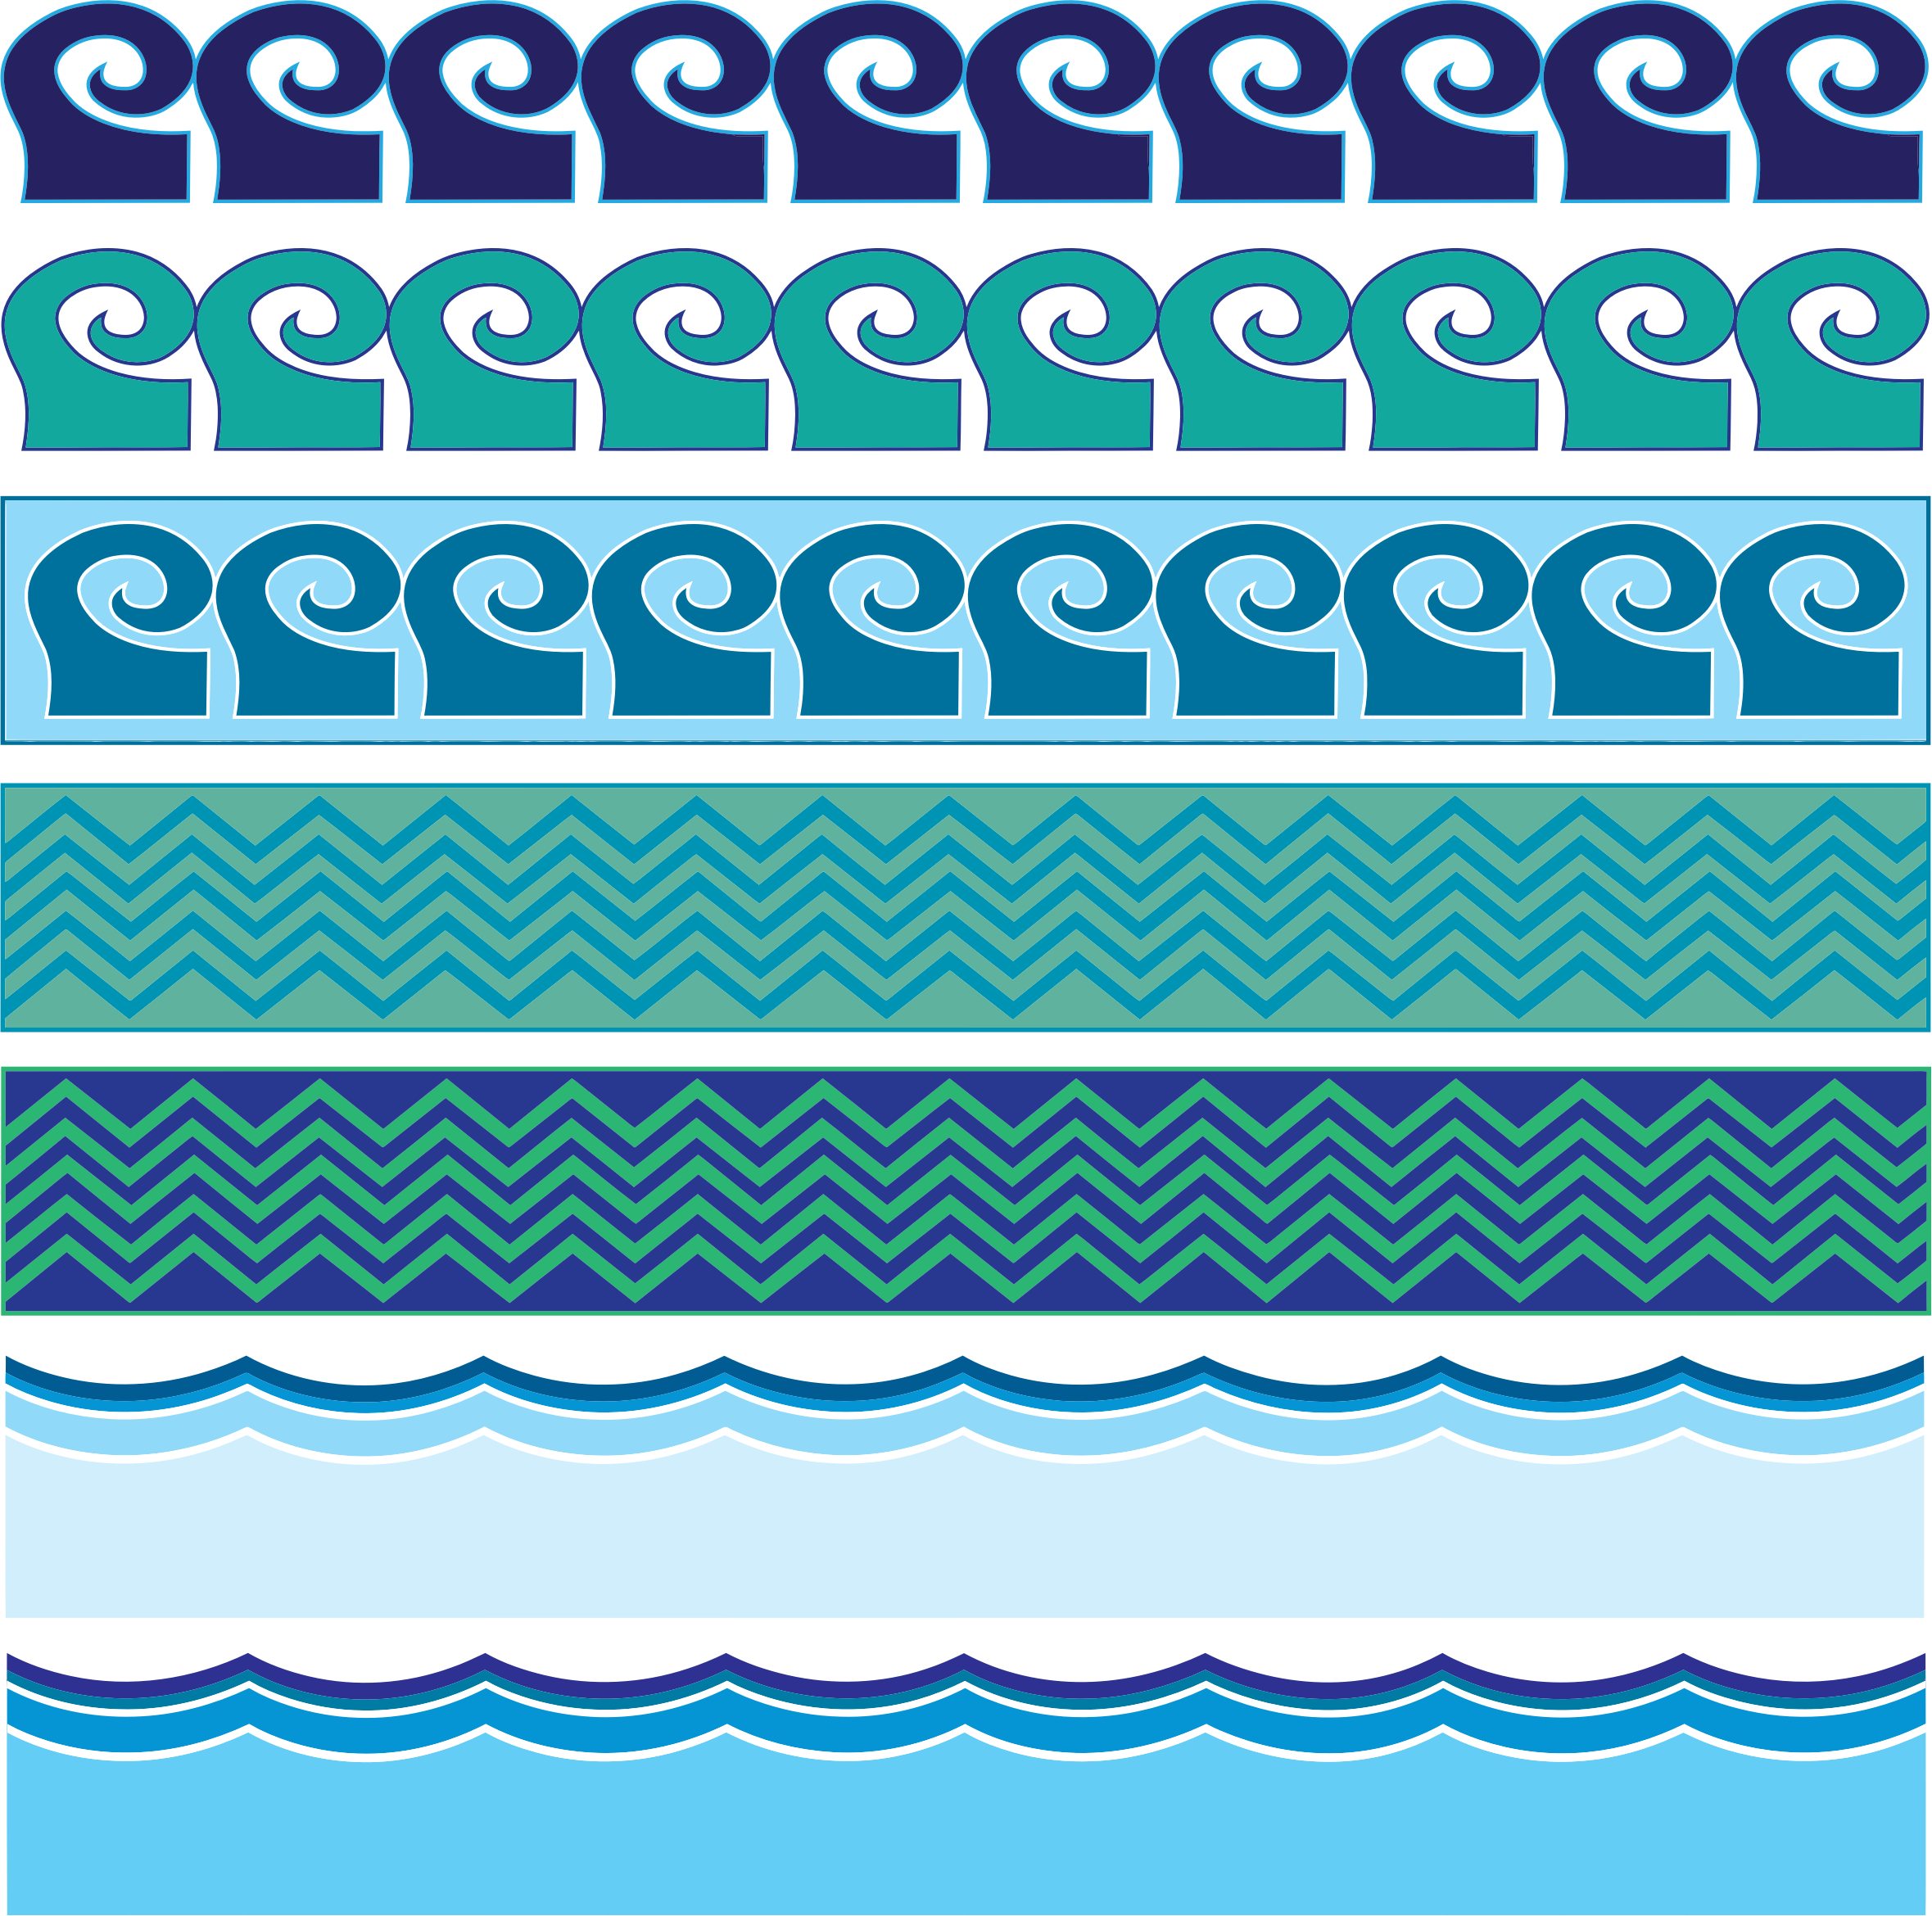 Waves clipart teal. Water patterns big image